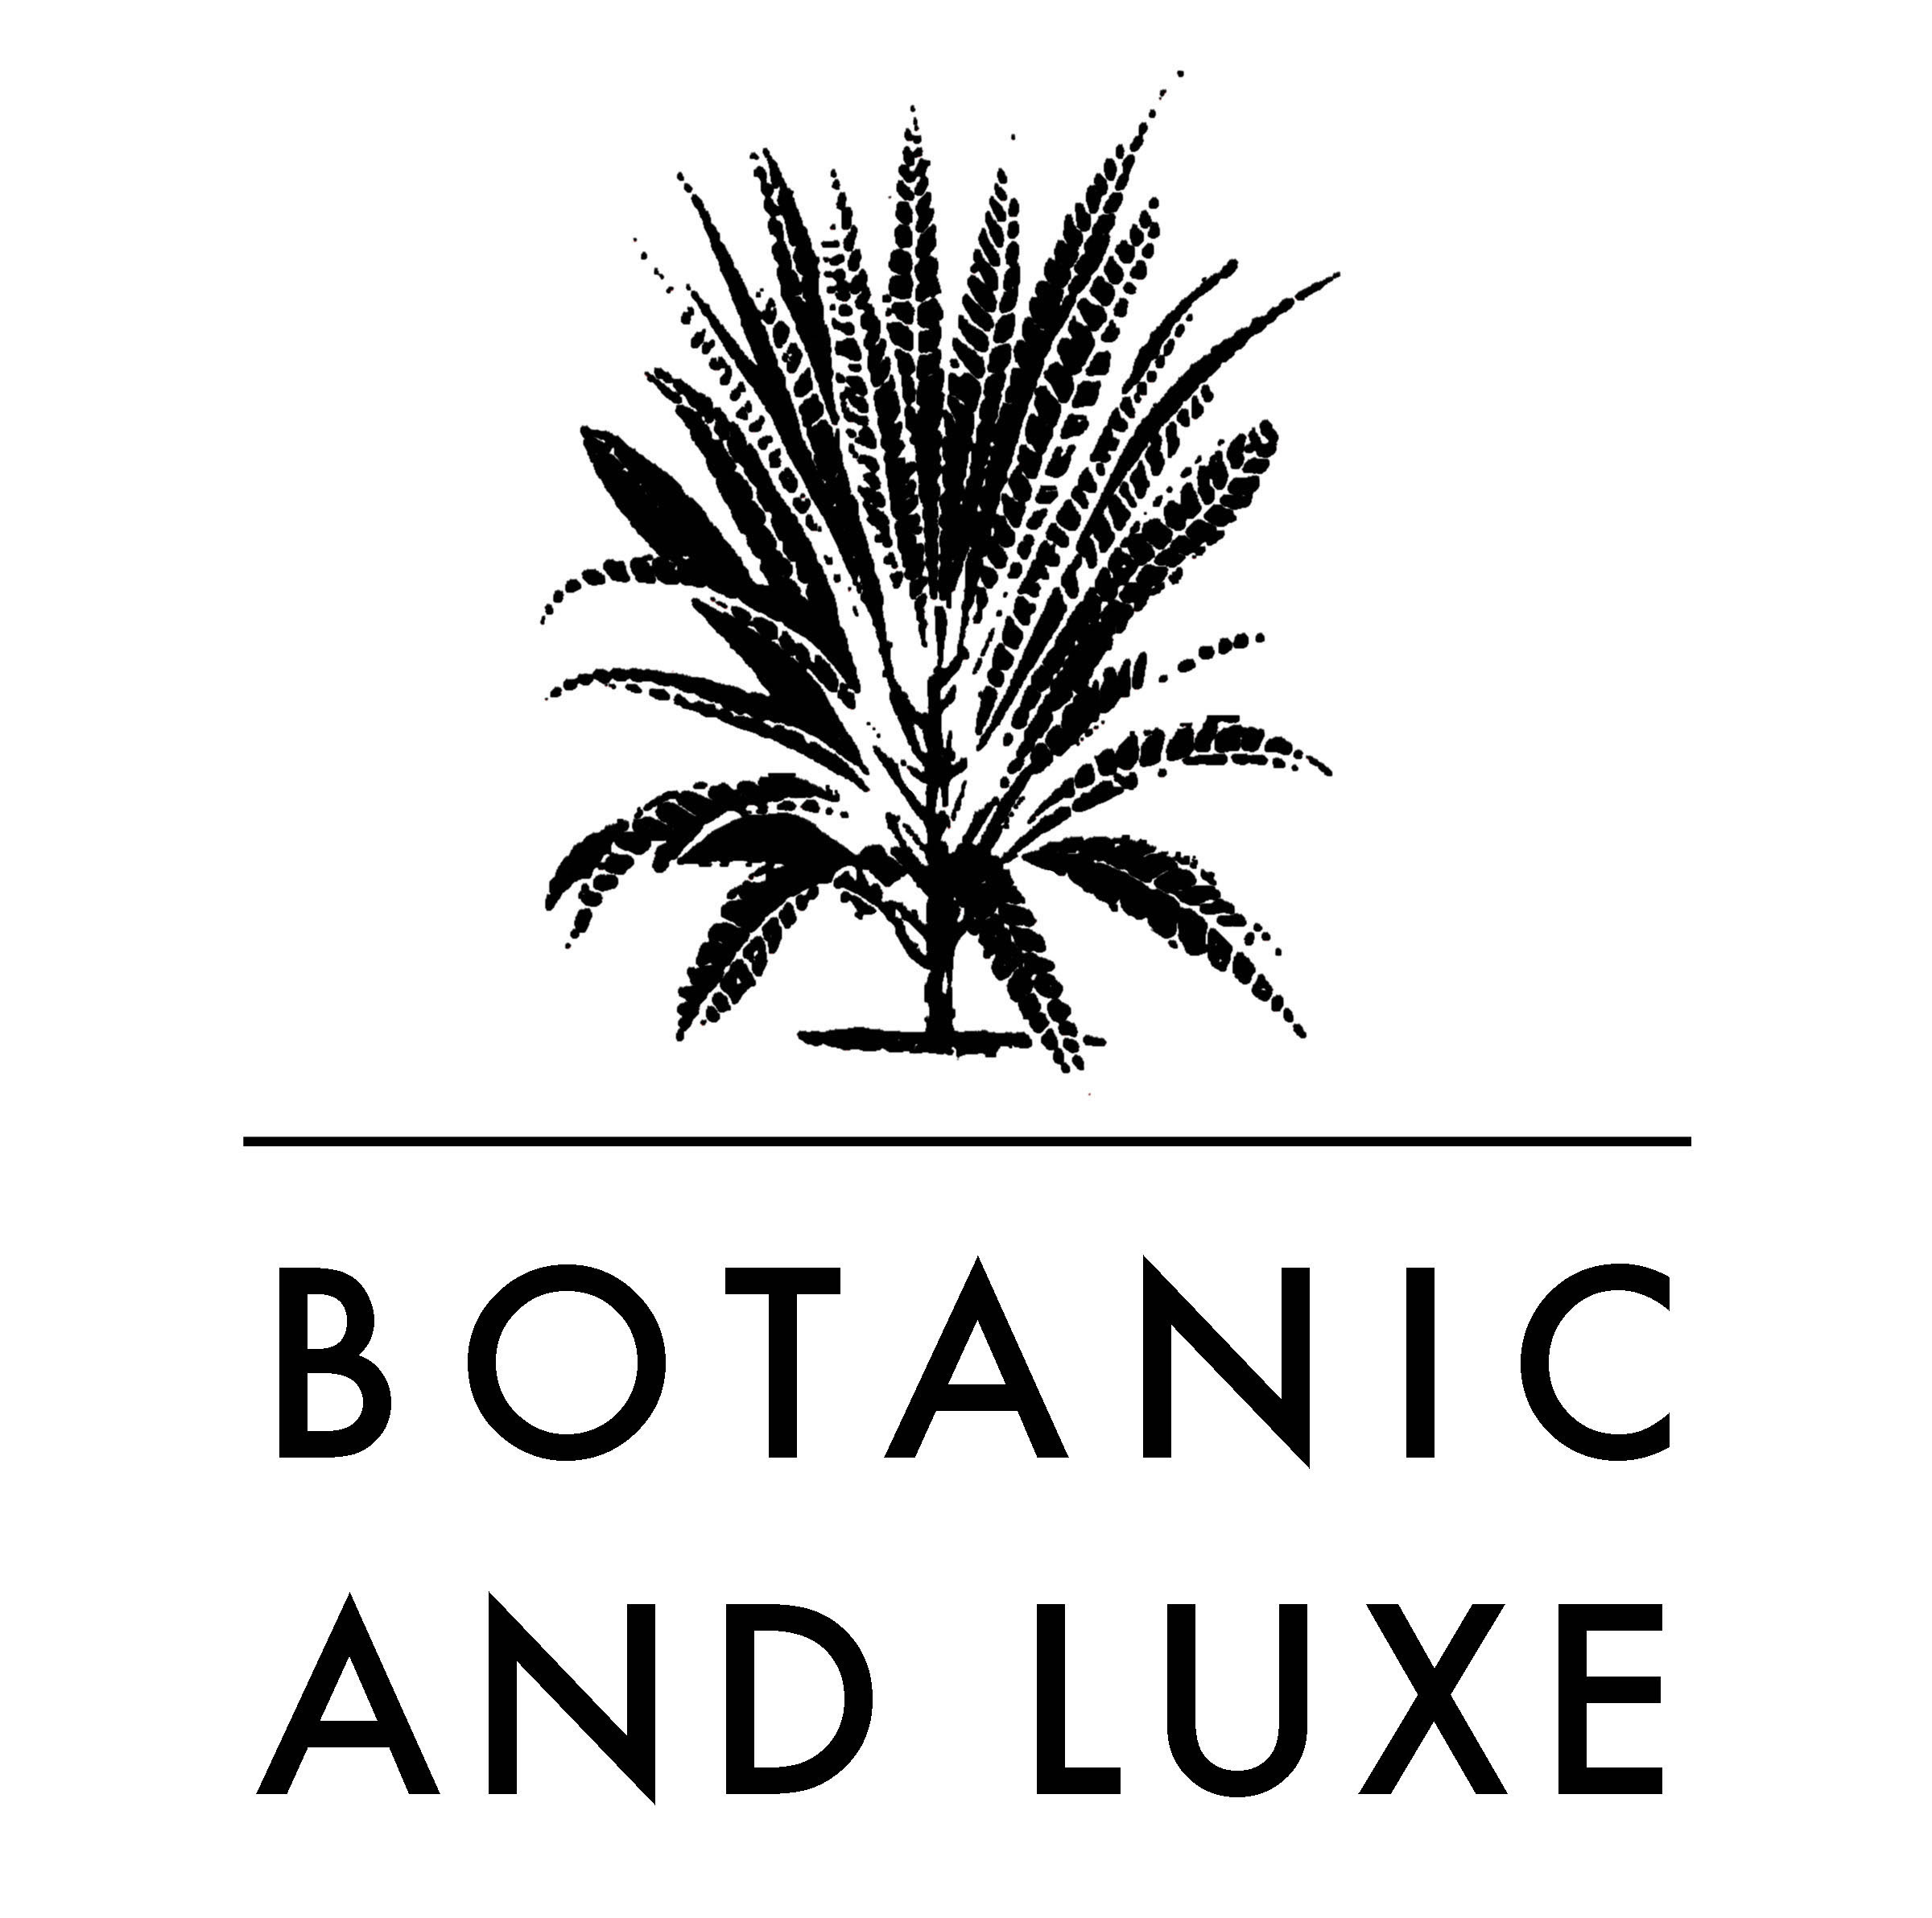 Botanic and Luxe 701 Front St, Santa Cruz, CA 95060 - A lifestyle store for dreamers, lovers, and seekers of all things beautiful. At Botanic and Luxe you will find thoughtfully curated home goods, unique gifts for any occasion and our favorite home accent: plants.  We invite you to explore our world of soulful living.